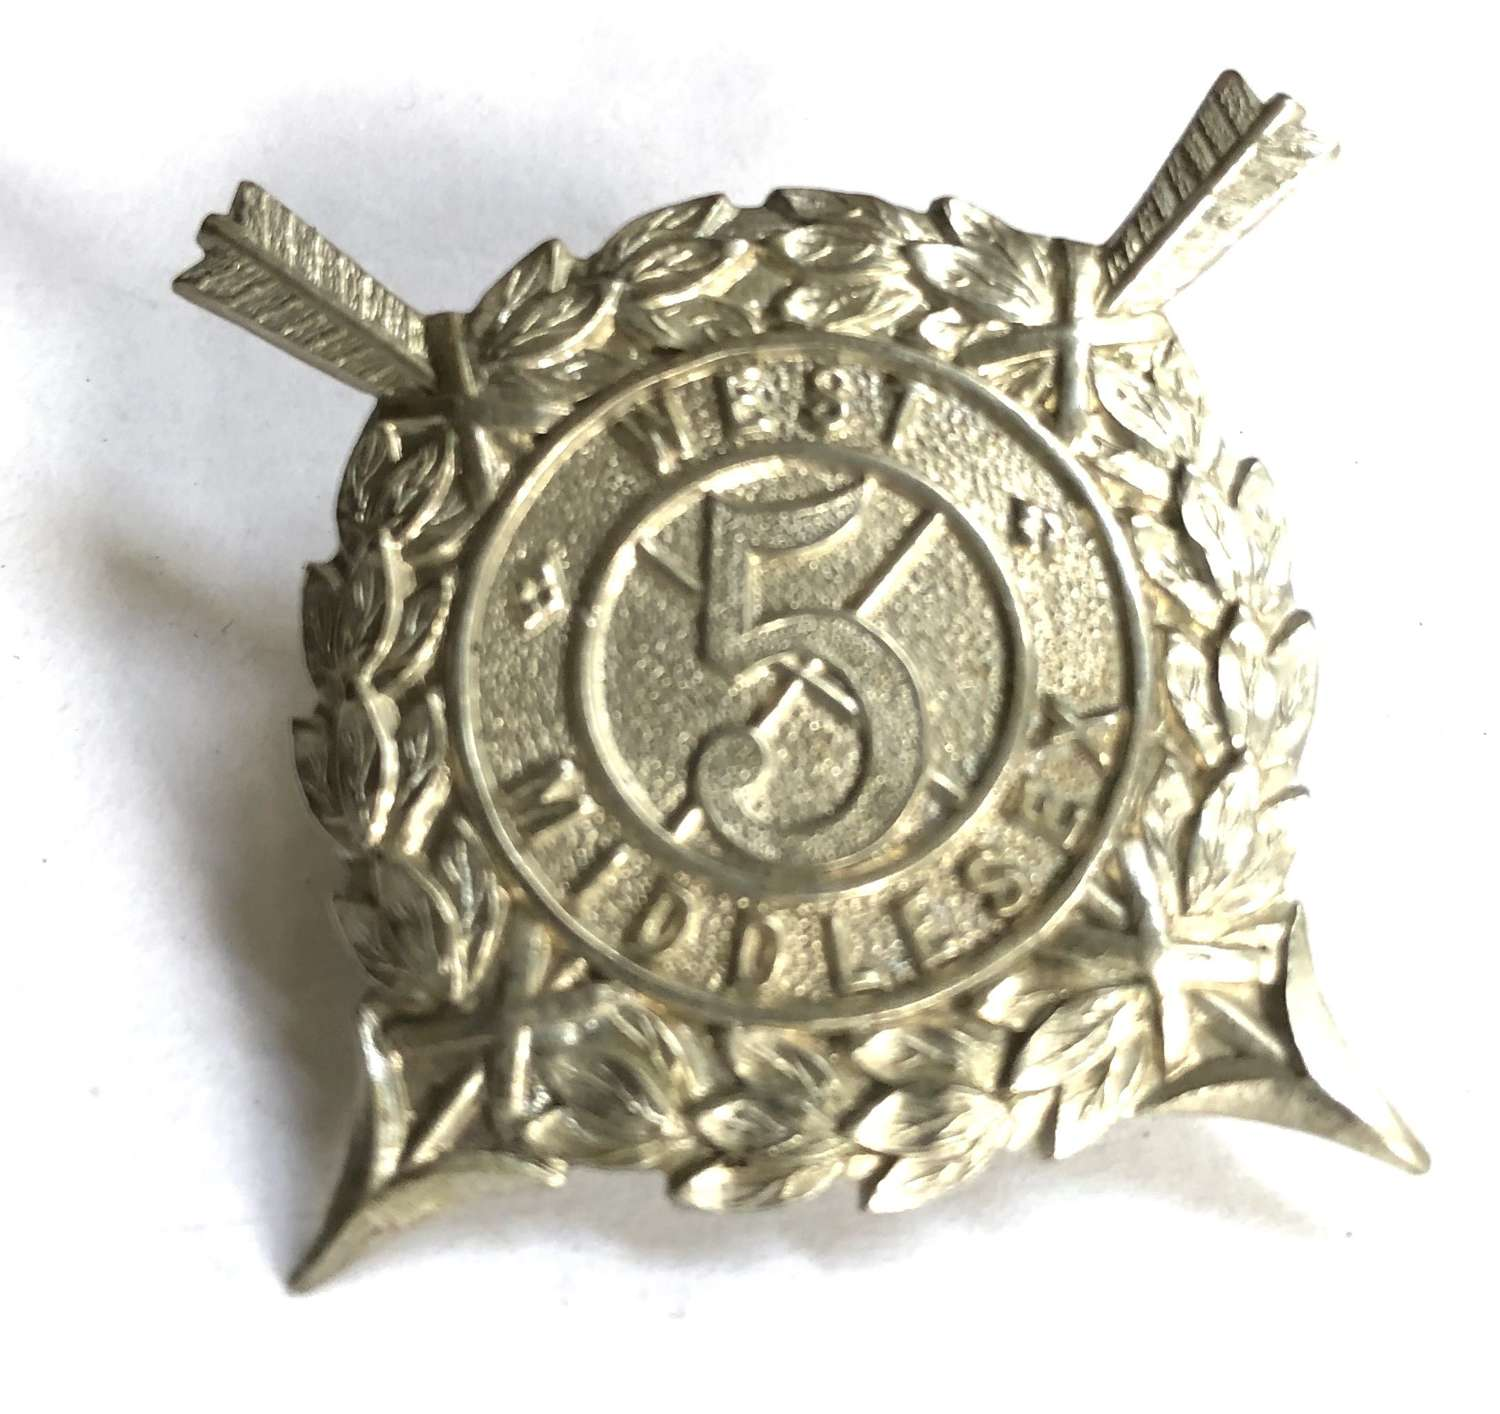 5th West Middlesex Volunteer Rifle Corps (Harrow Rifles) FS cap badge